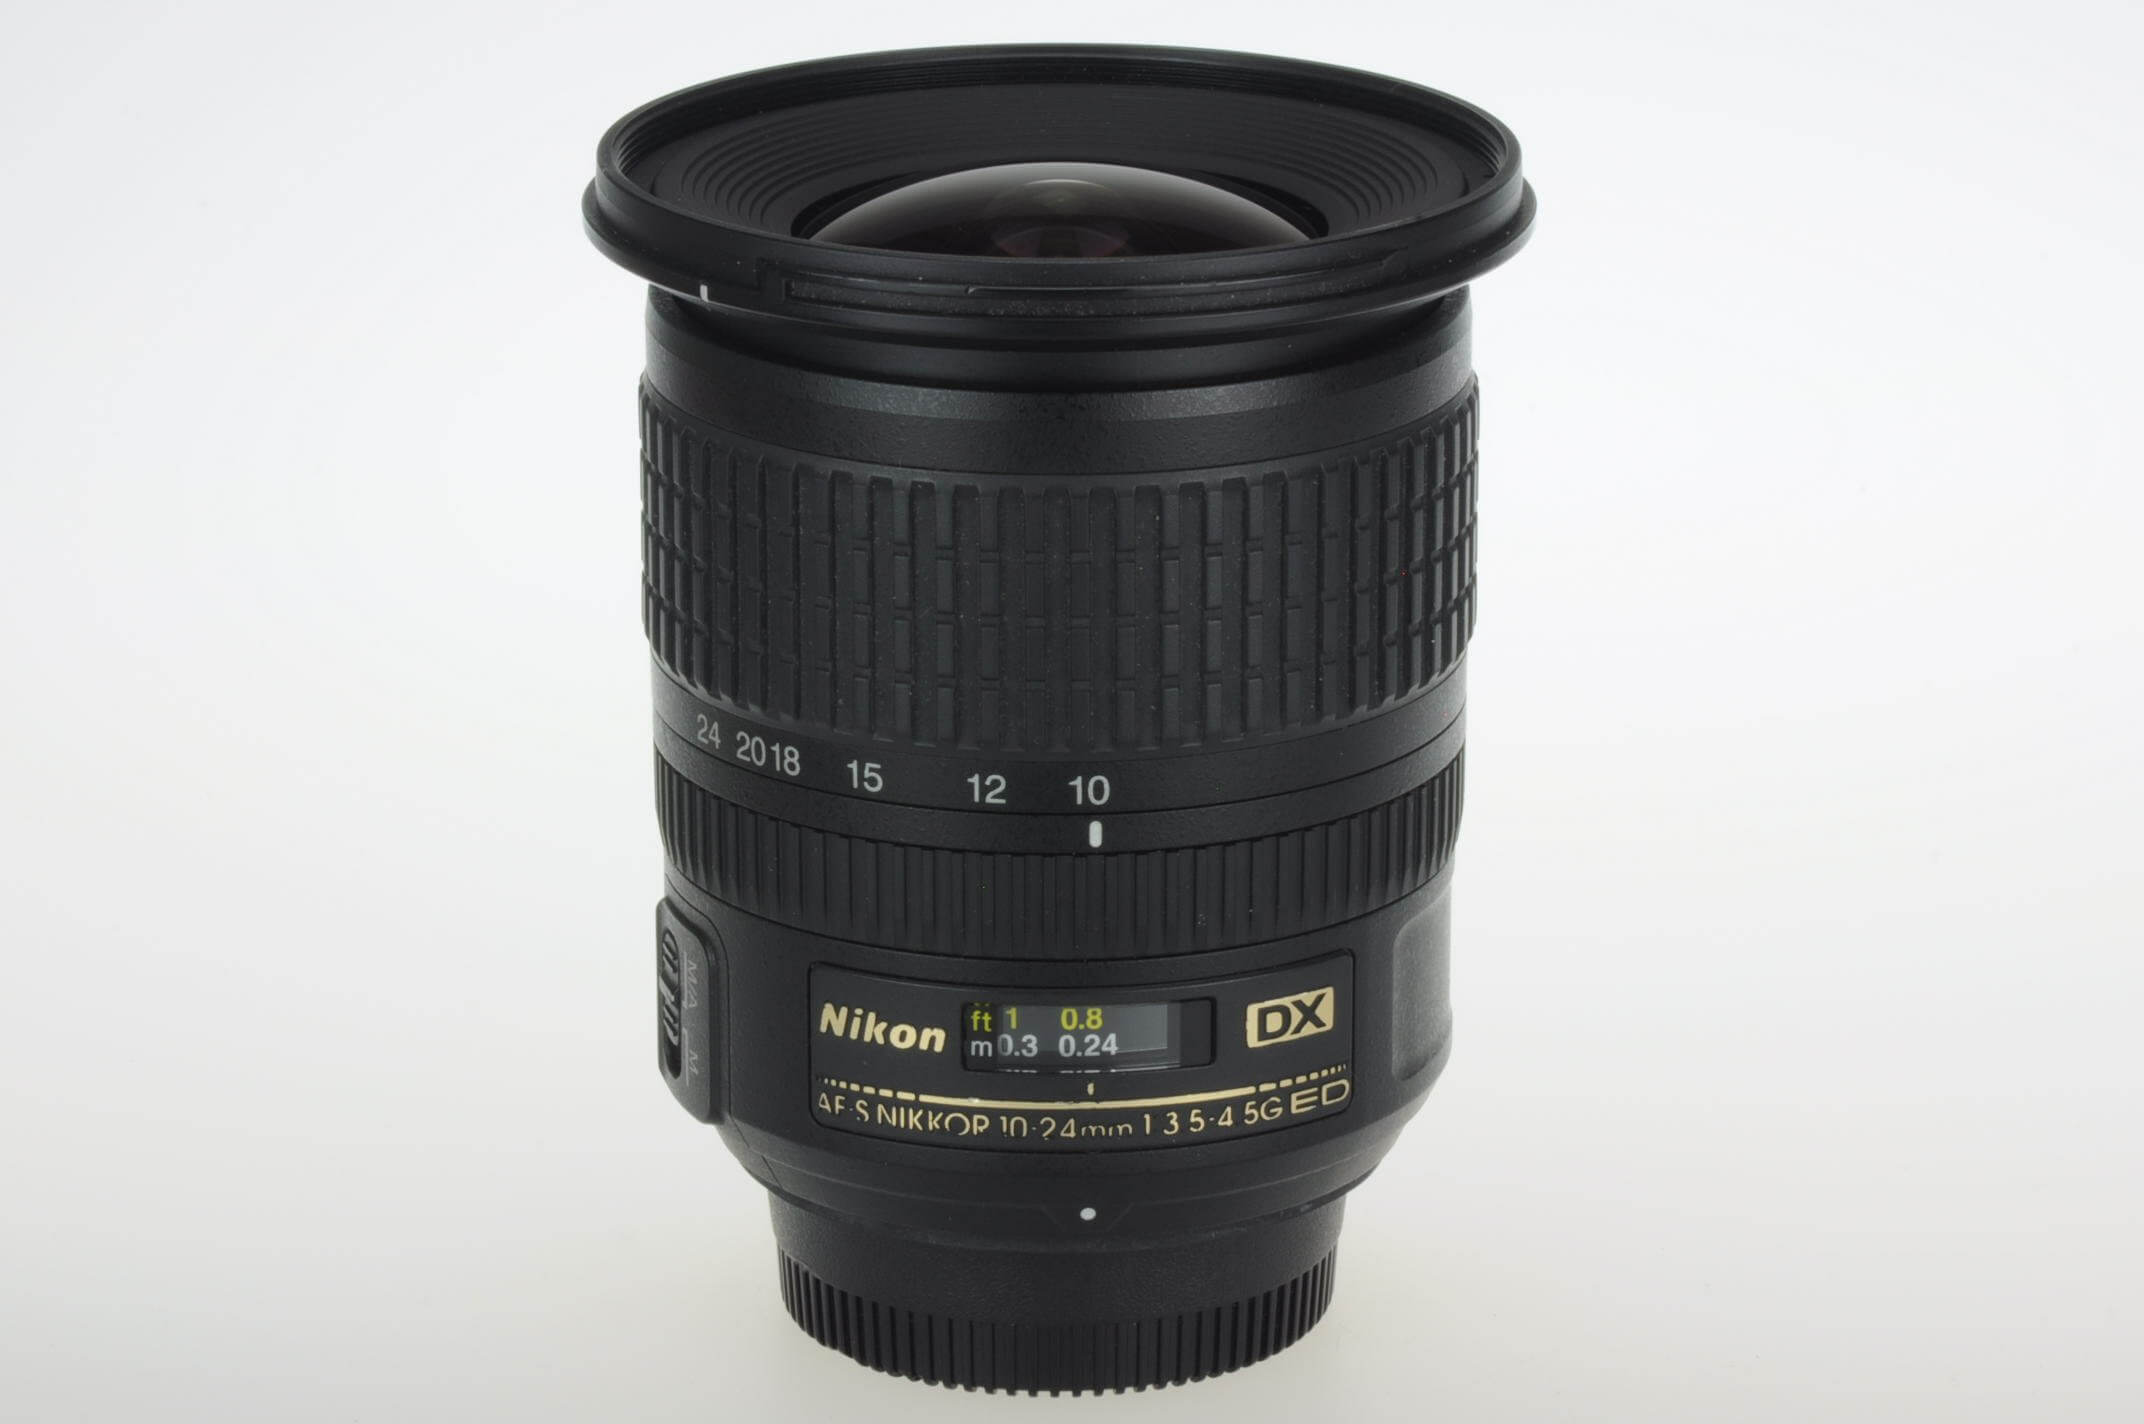 Nikon 10-24mm f3.5-4.5 AF-S DX G, boxed with hood and case